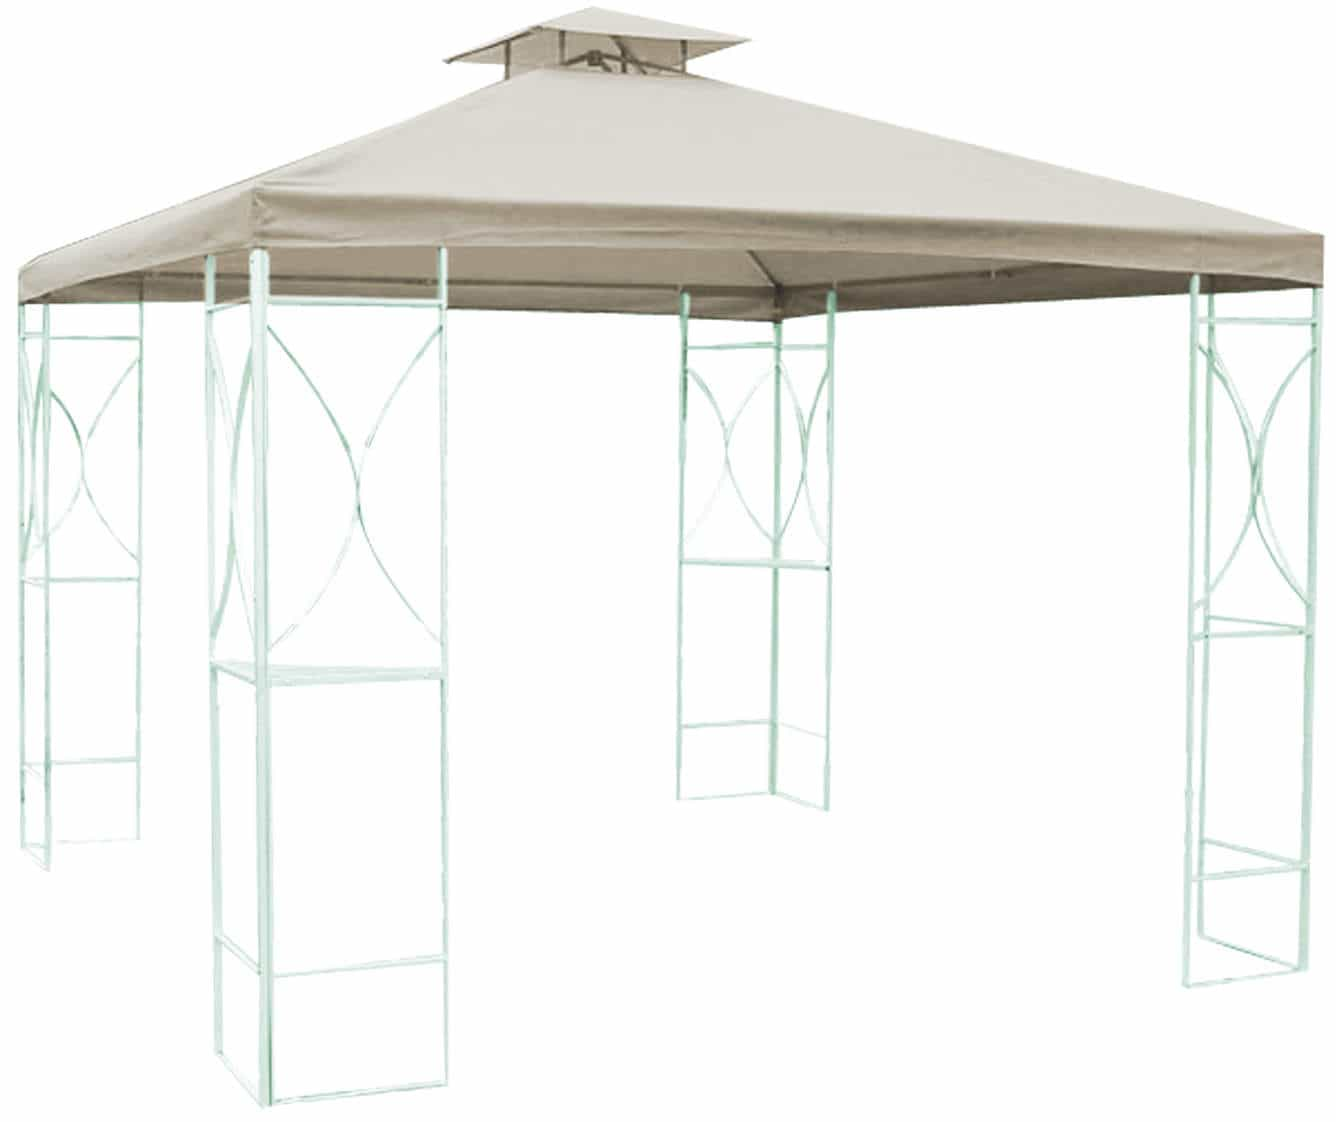 Luxury Gazebo Garden Furniture Ireland Outdoor